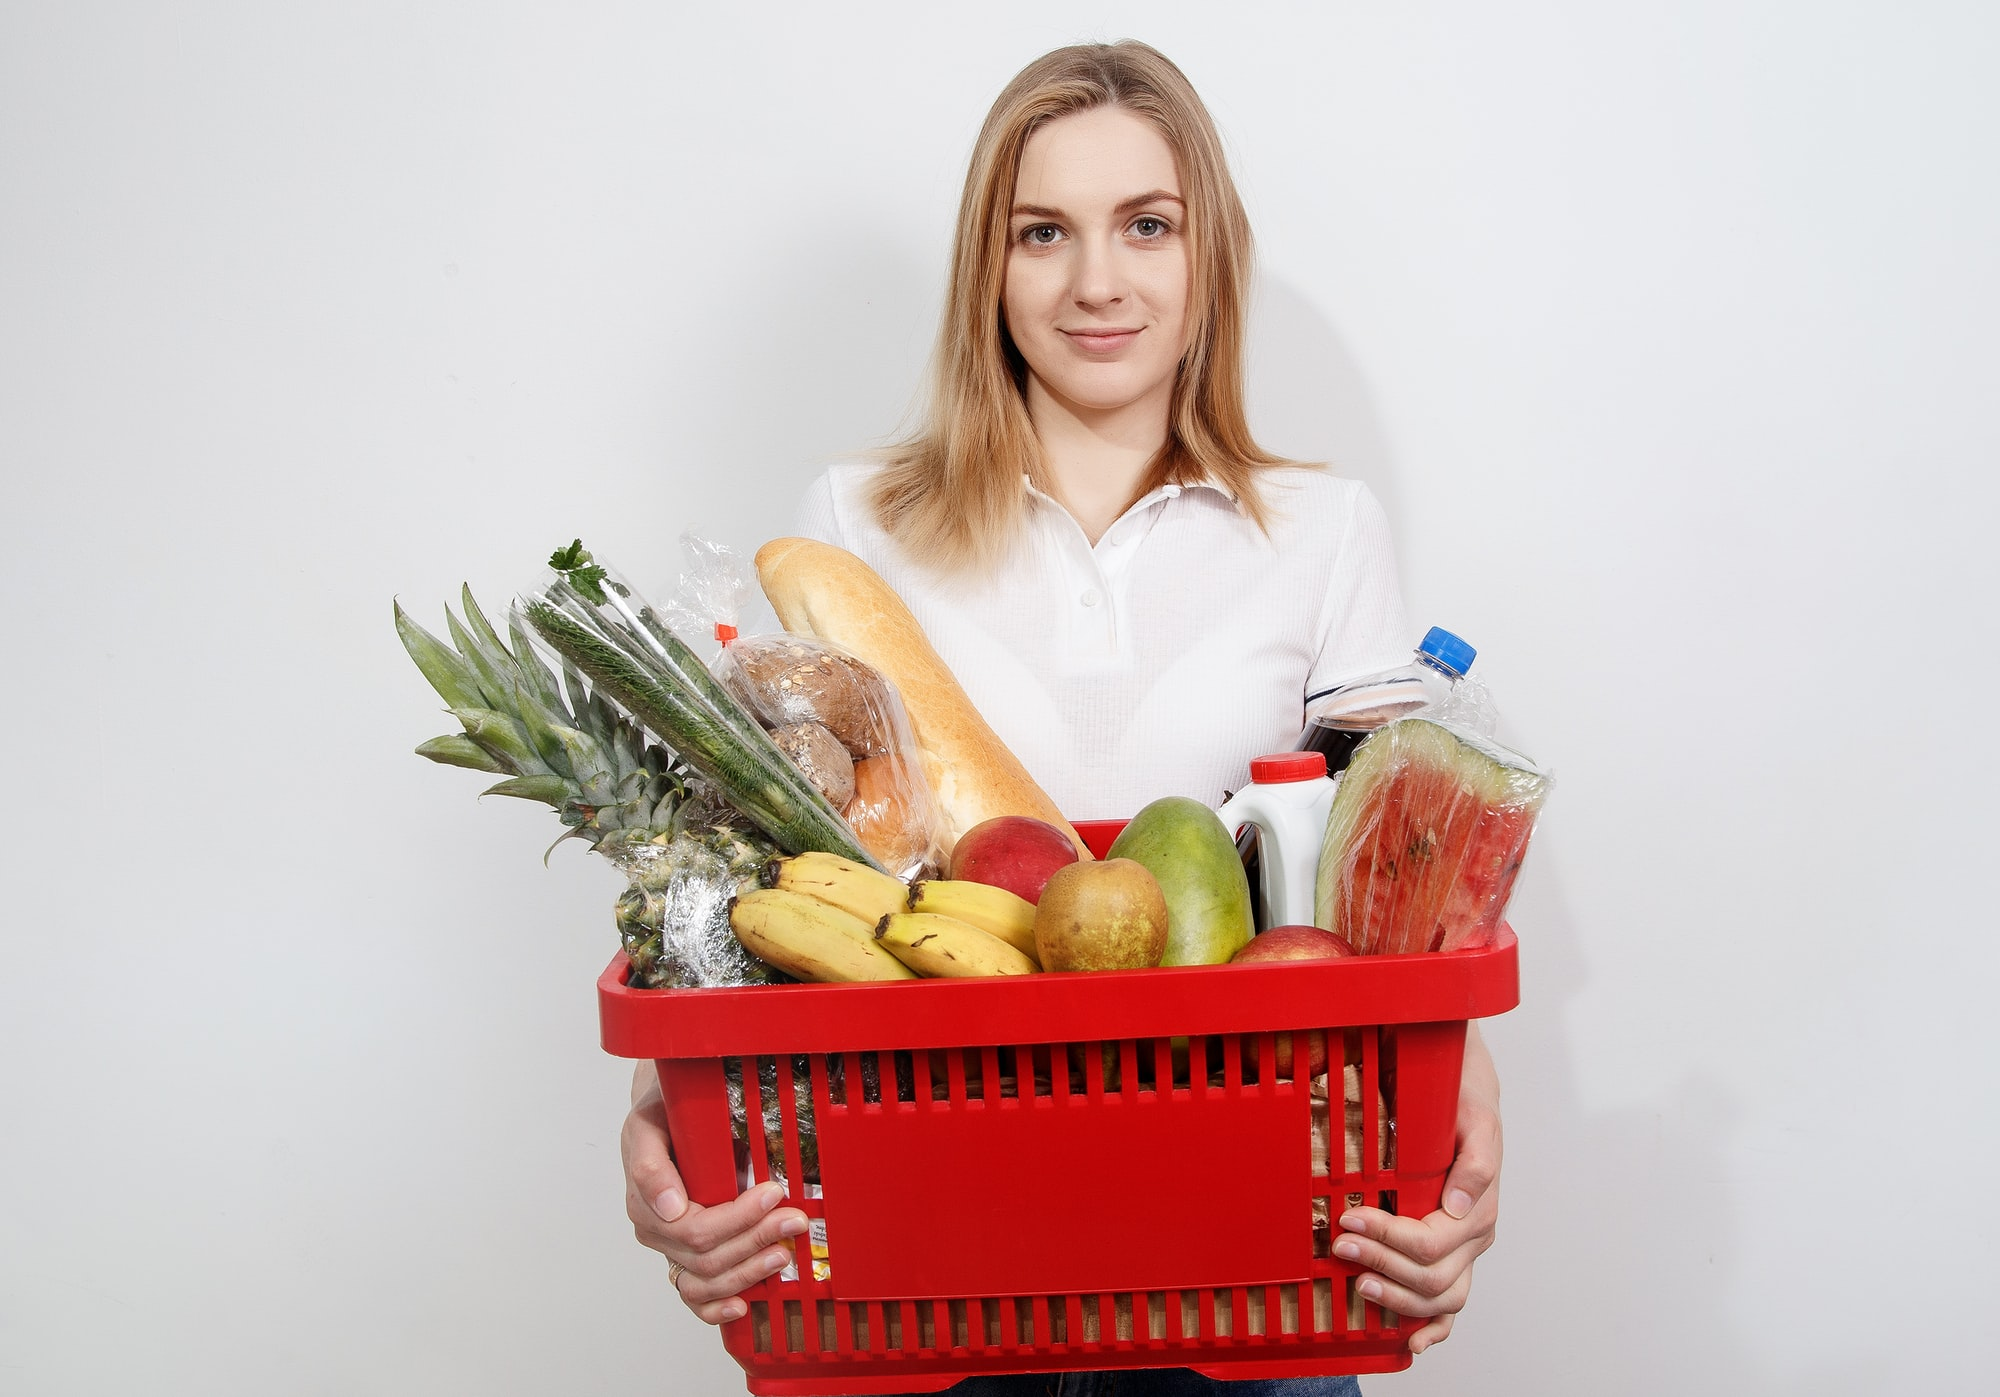 Young woman with goods in basket. The girl made a purchase. Girl holding a basket of groceries. Vegetables